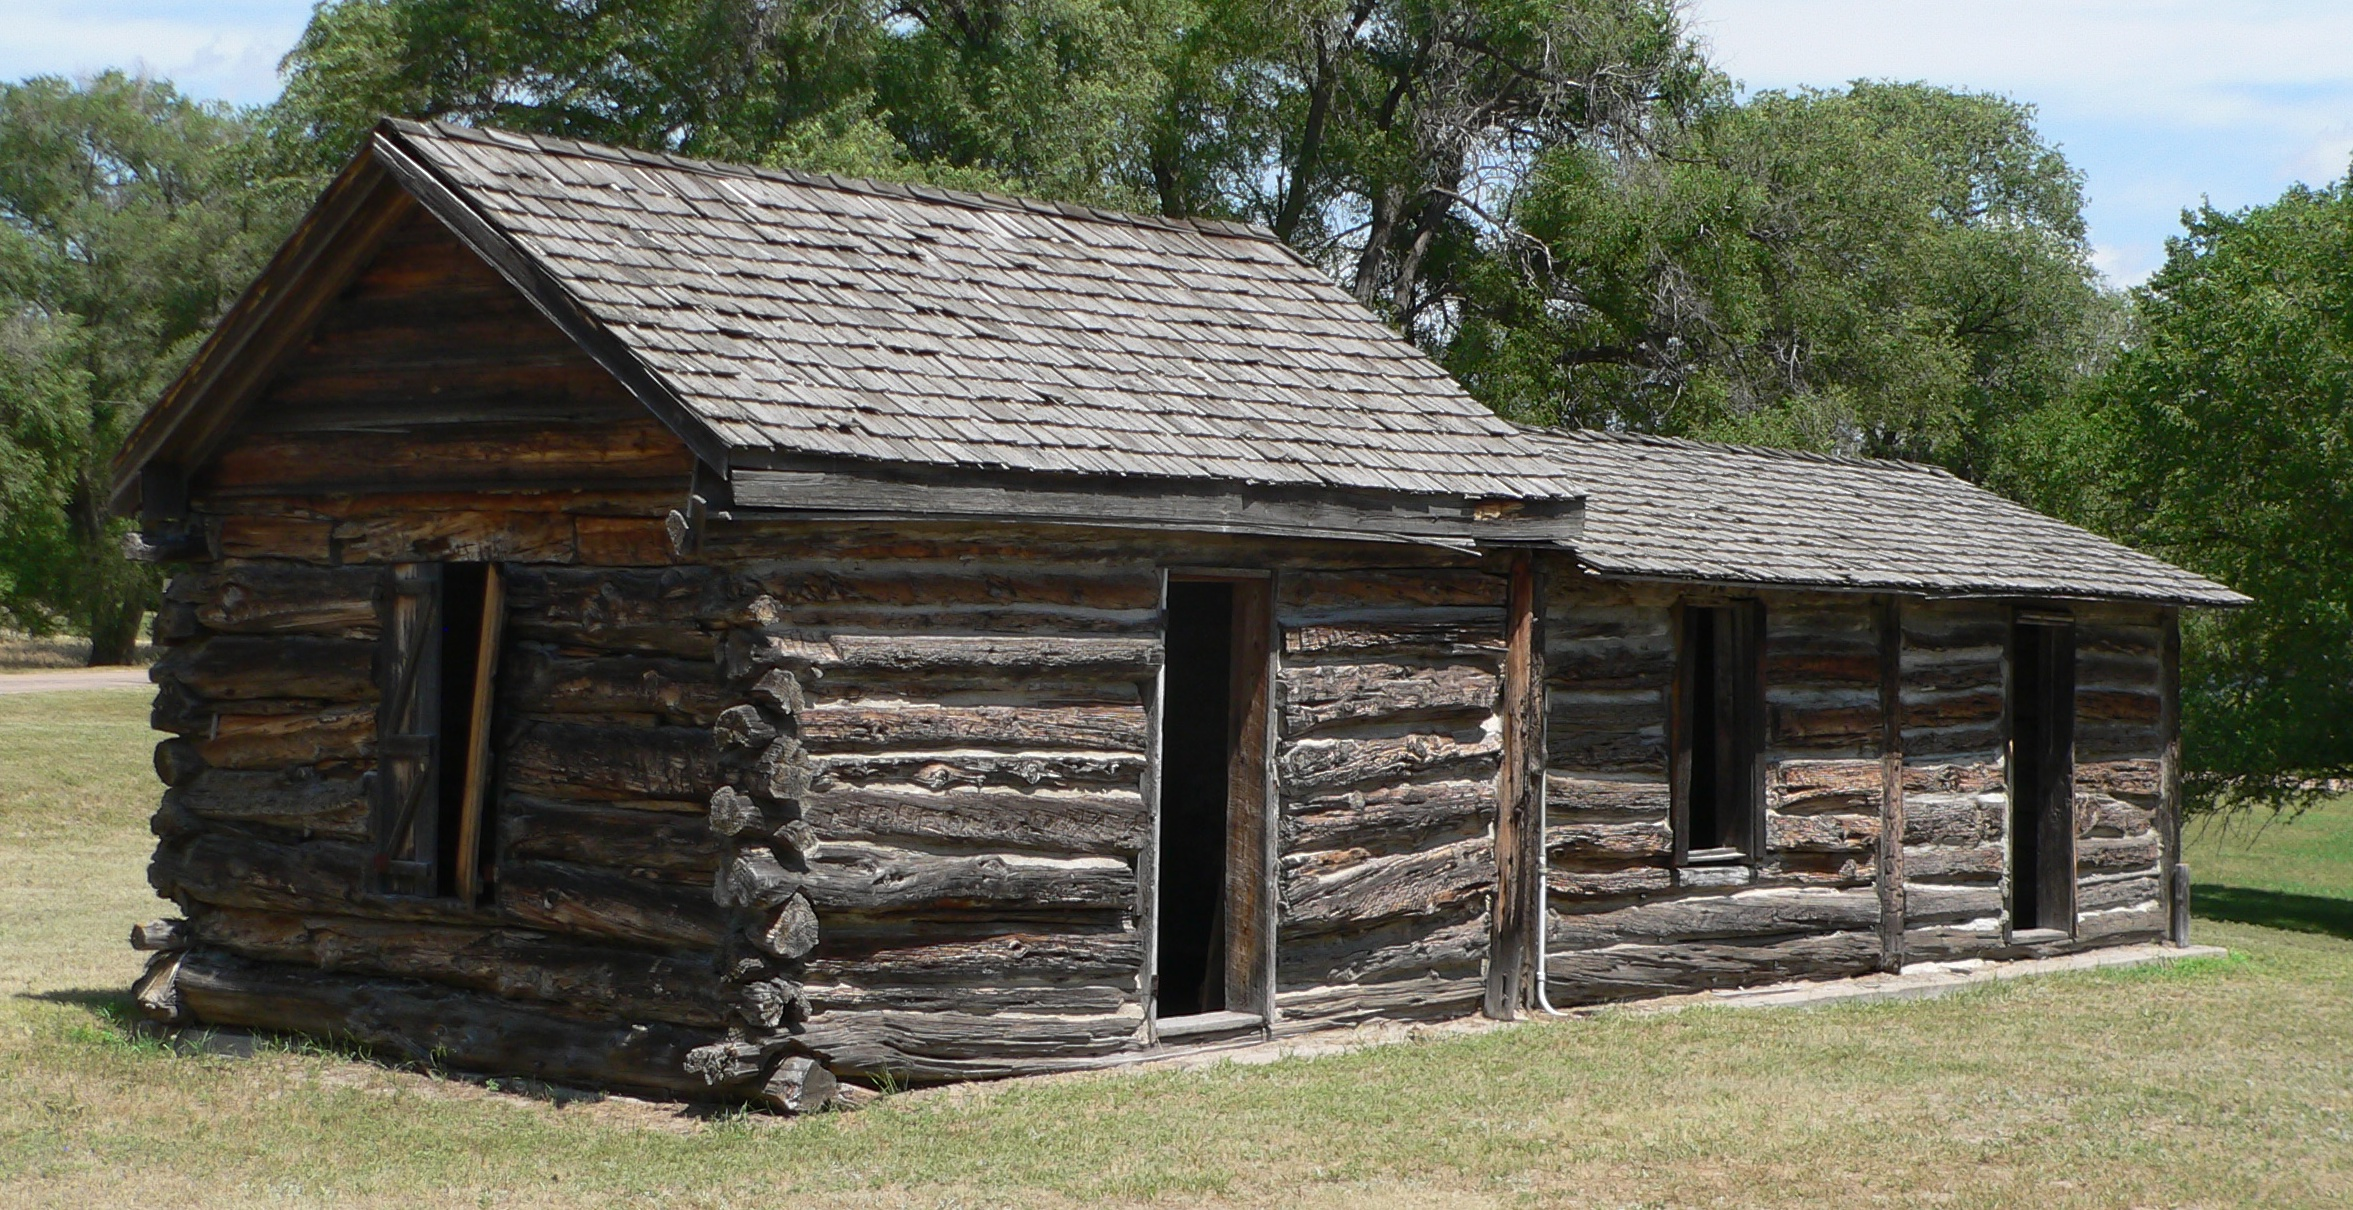 File:Arthur Nebraska Log Cabin 4.JPG Wikimedia Commons. Full resolution‎  file, nominally Width 2353 Height 1210 pixels, file with #4C6D7F.